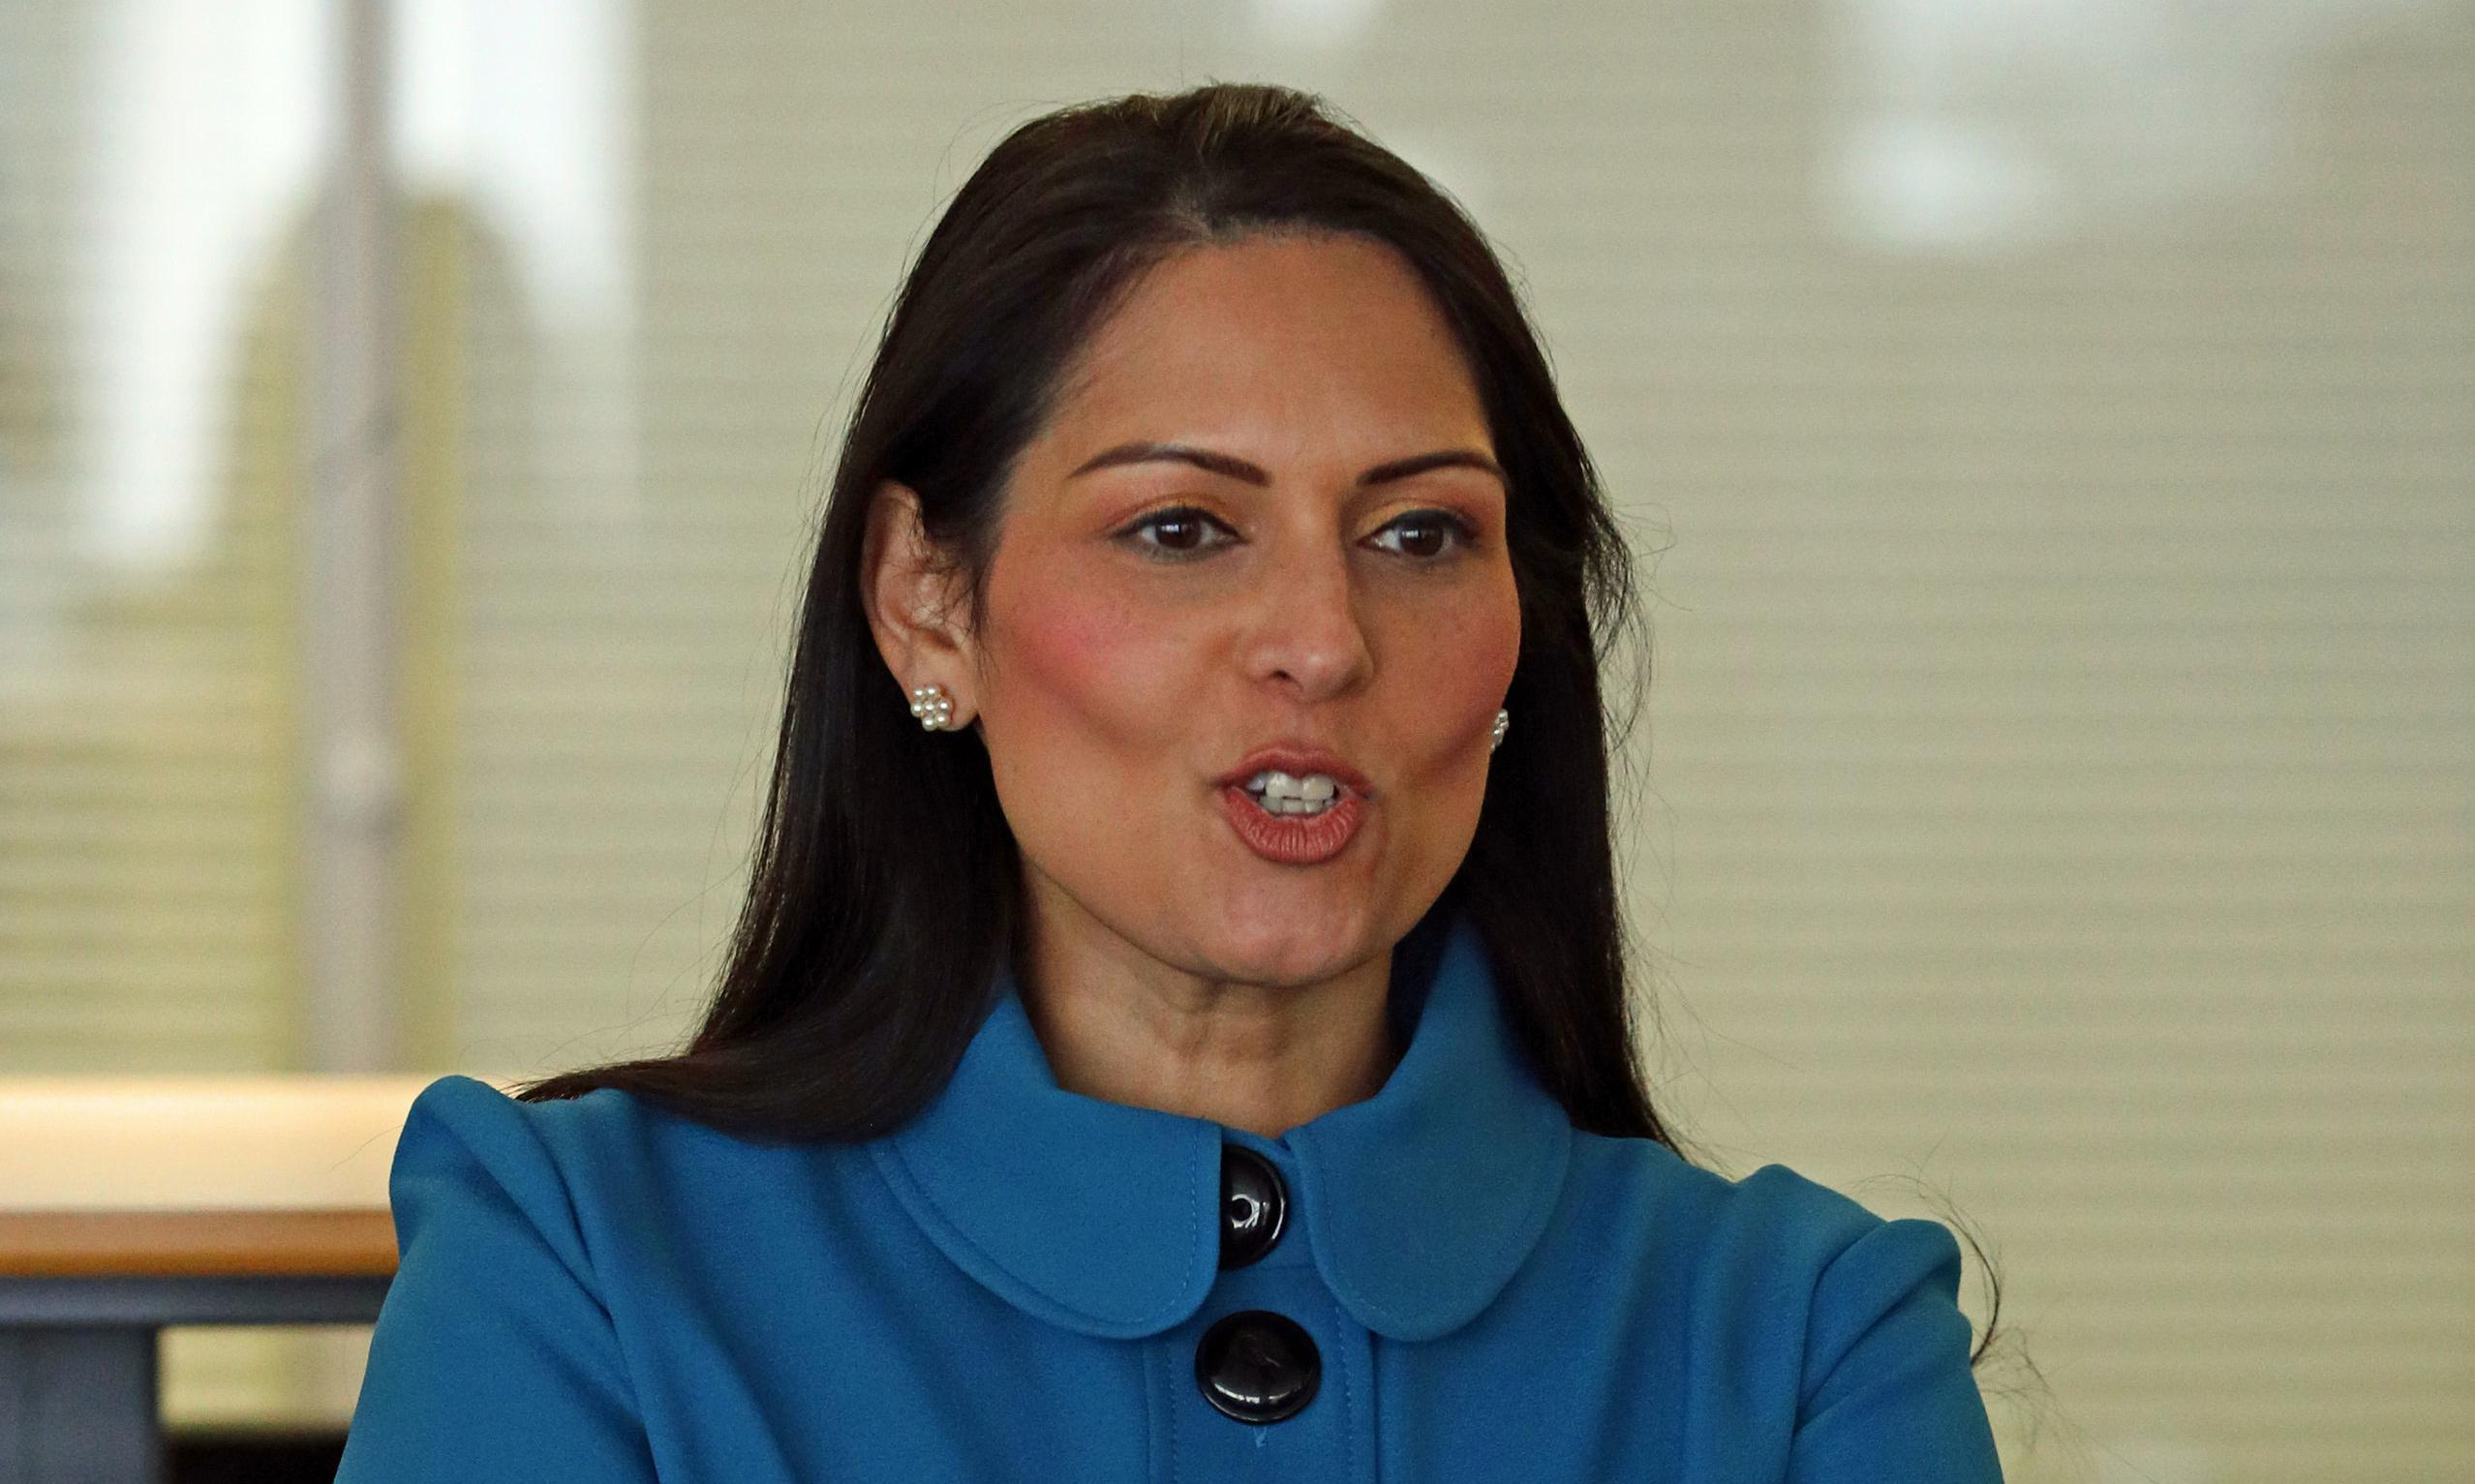 Priti Patel says Tory government not to blame for poverty in UK